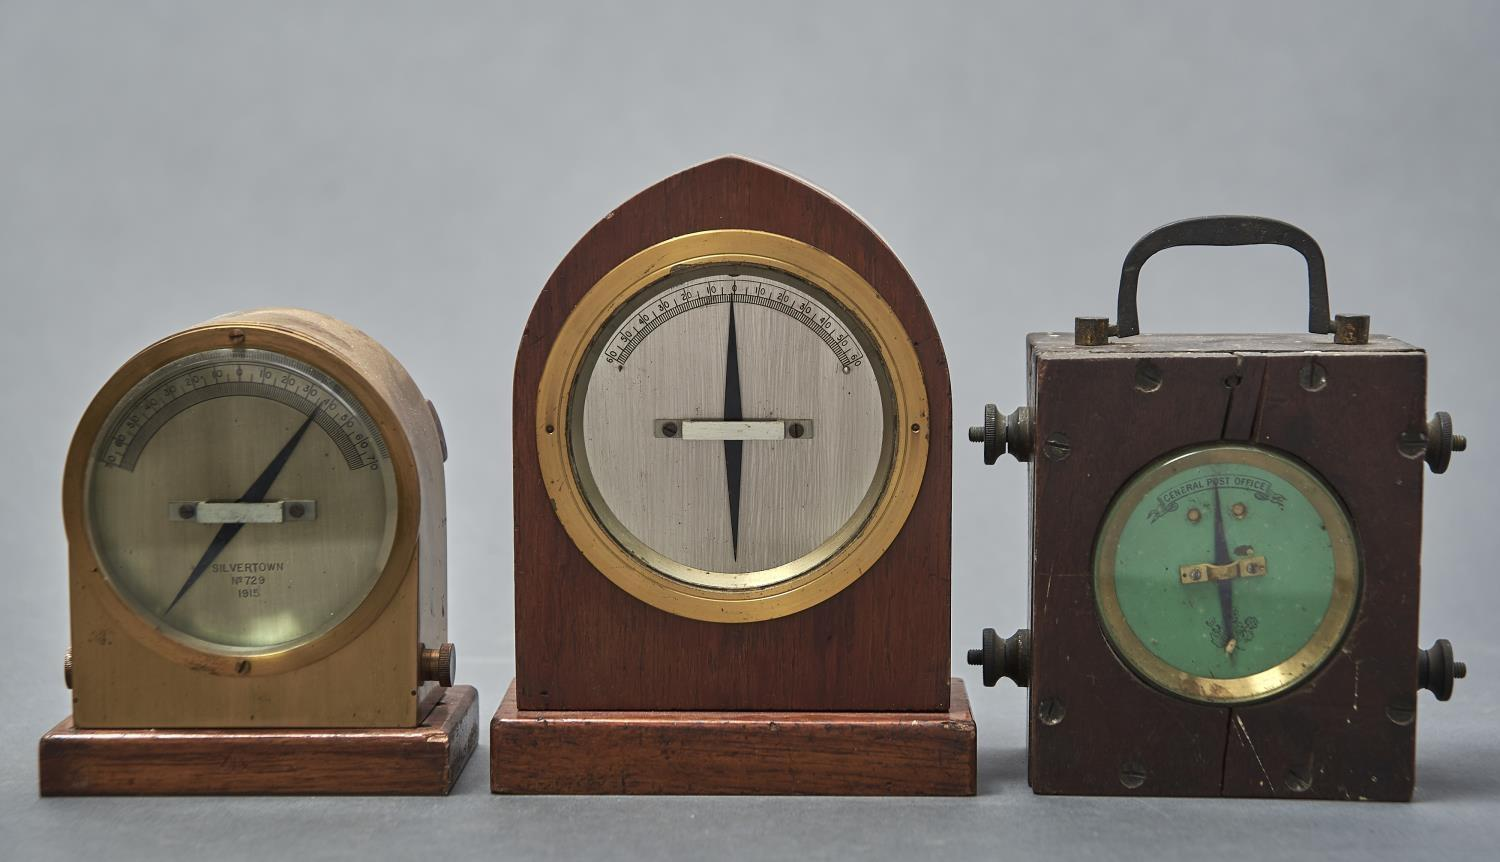 A LANCET ARCHED MAHOGANY CASED GALVANOMETER, ANOTHER IN LACQUERED BRASS CASE, DIAL MARKED